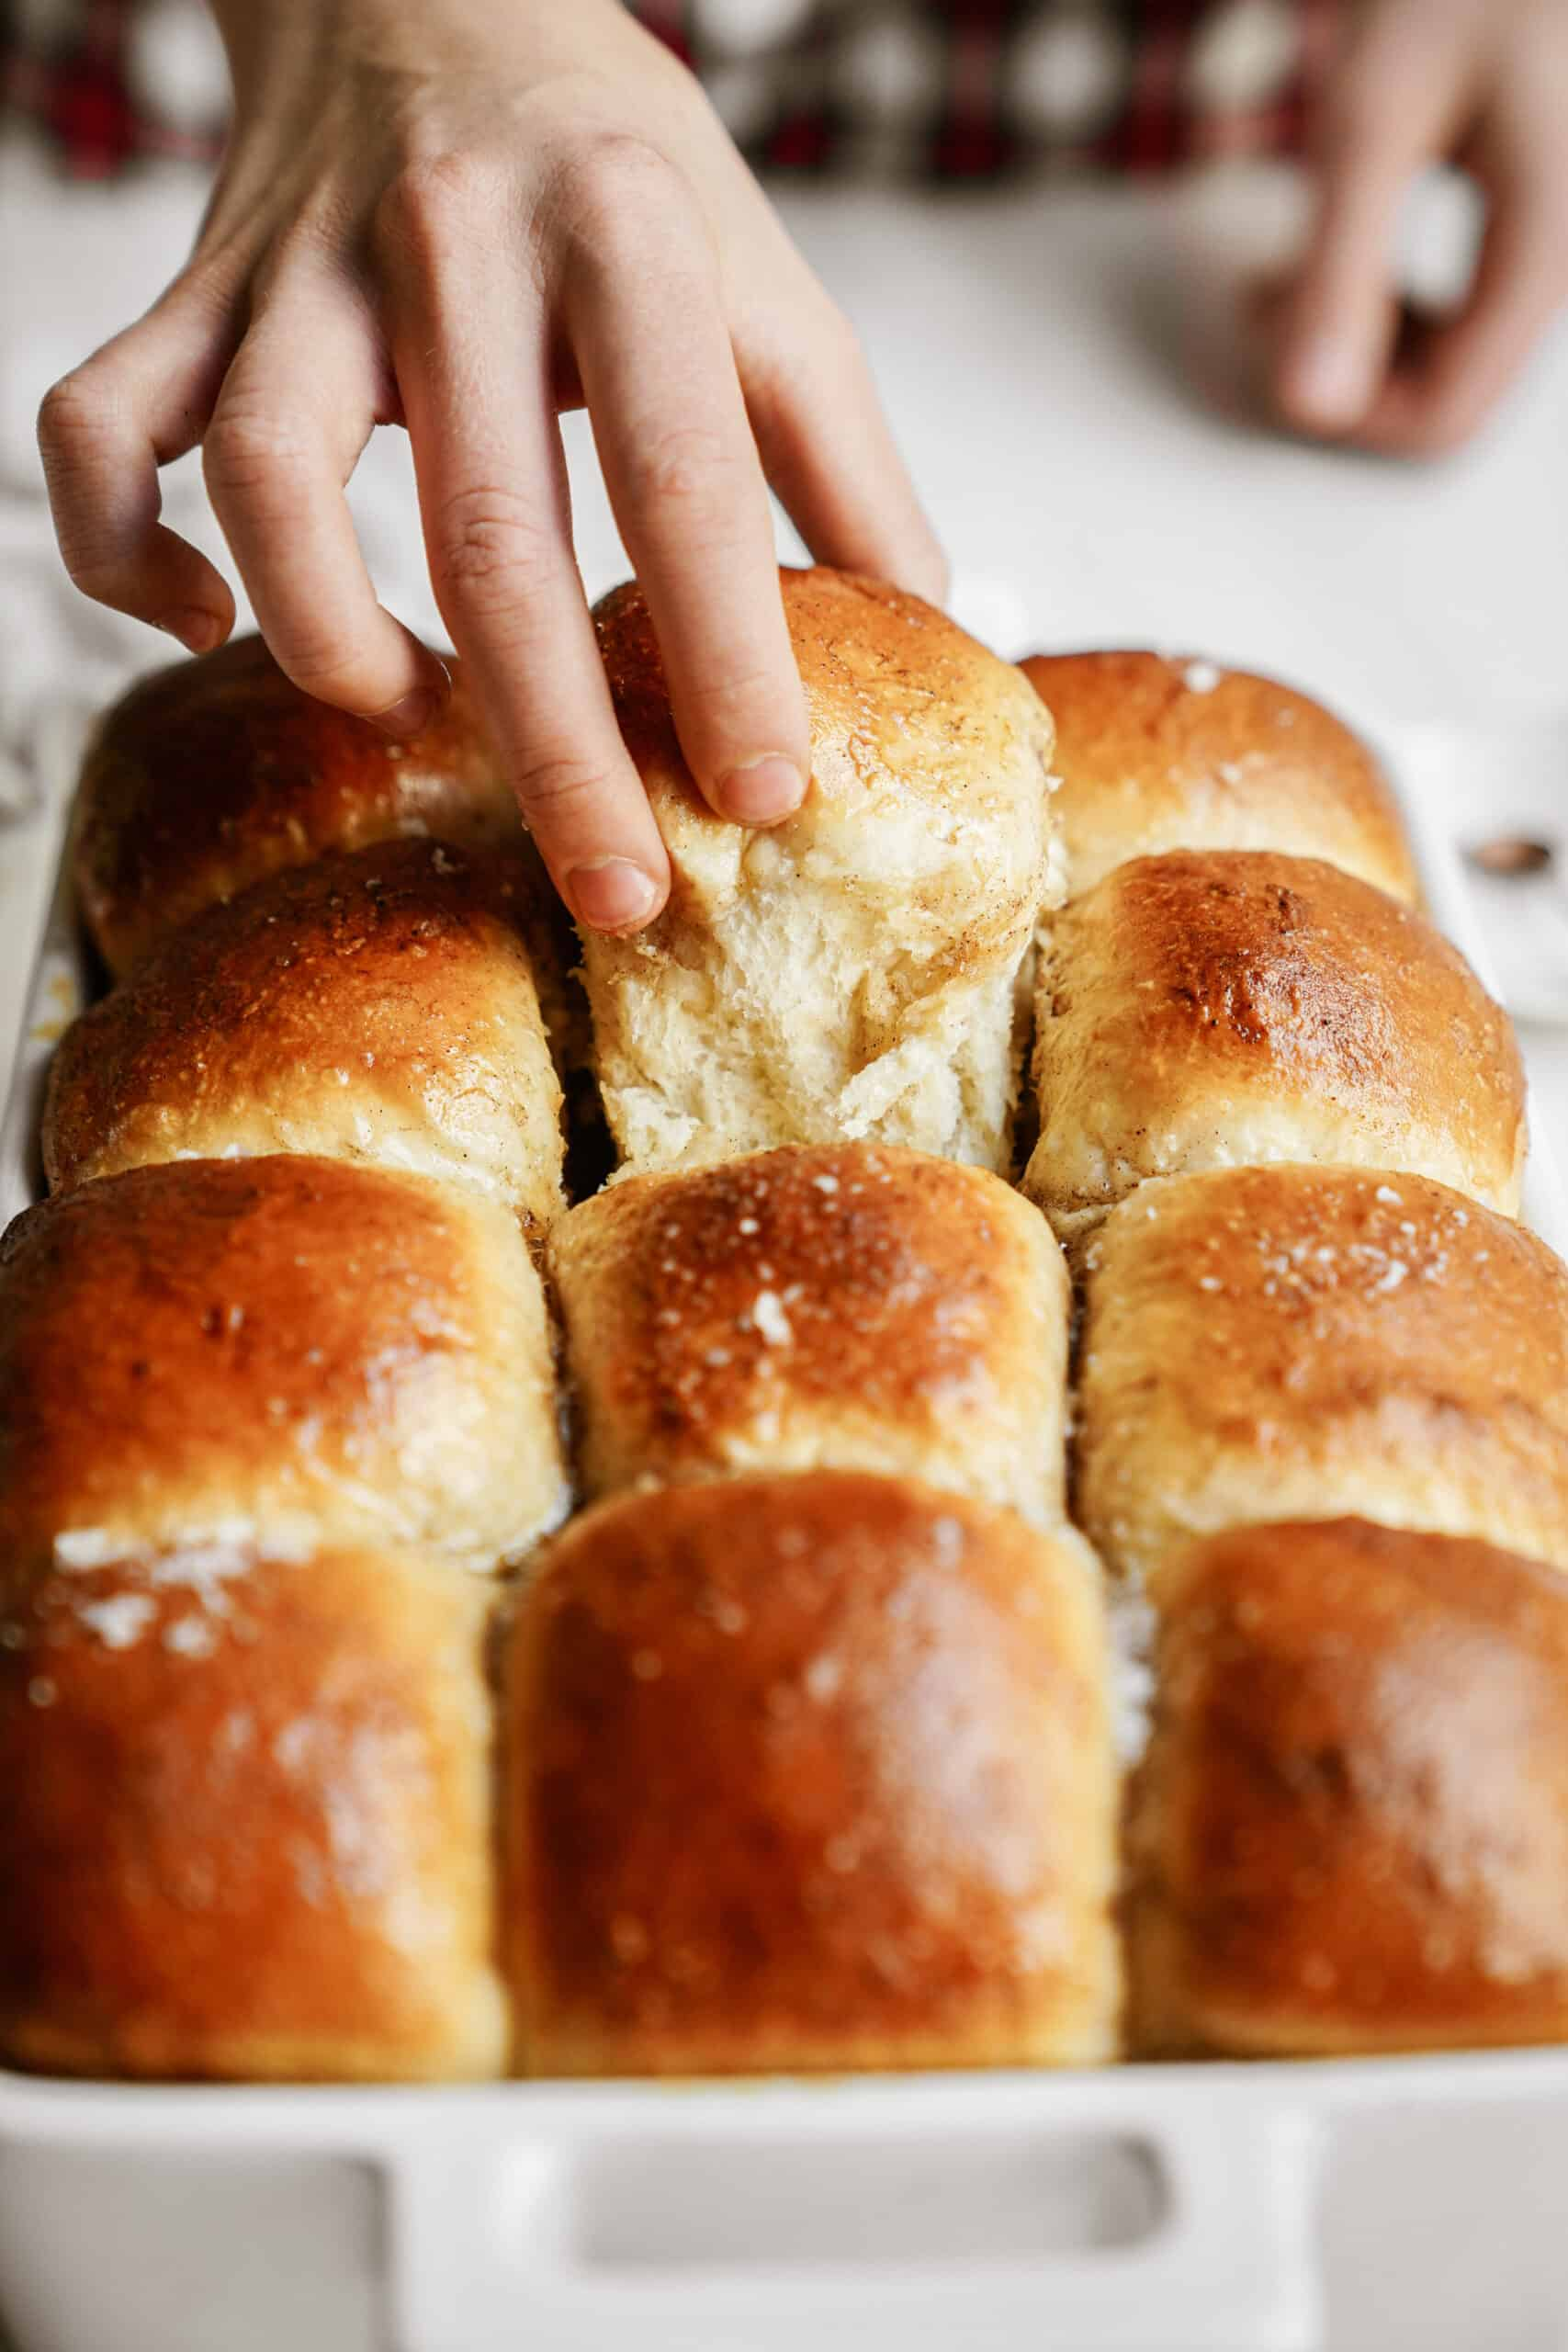 Hand taking dinner roll out of casserole dish